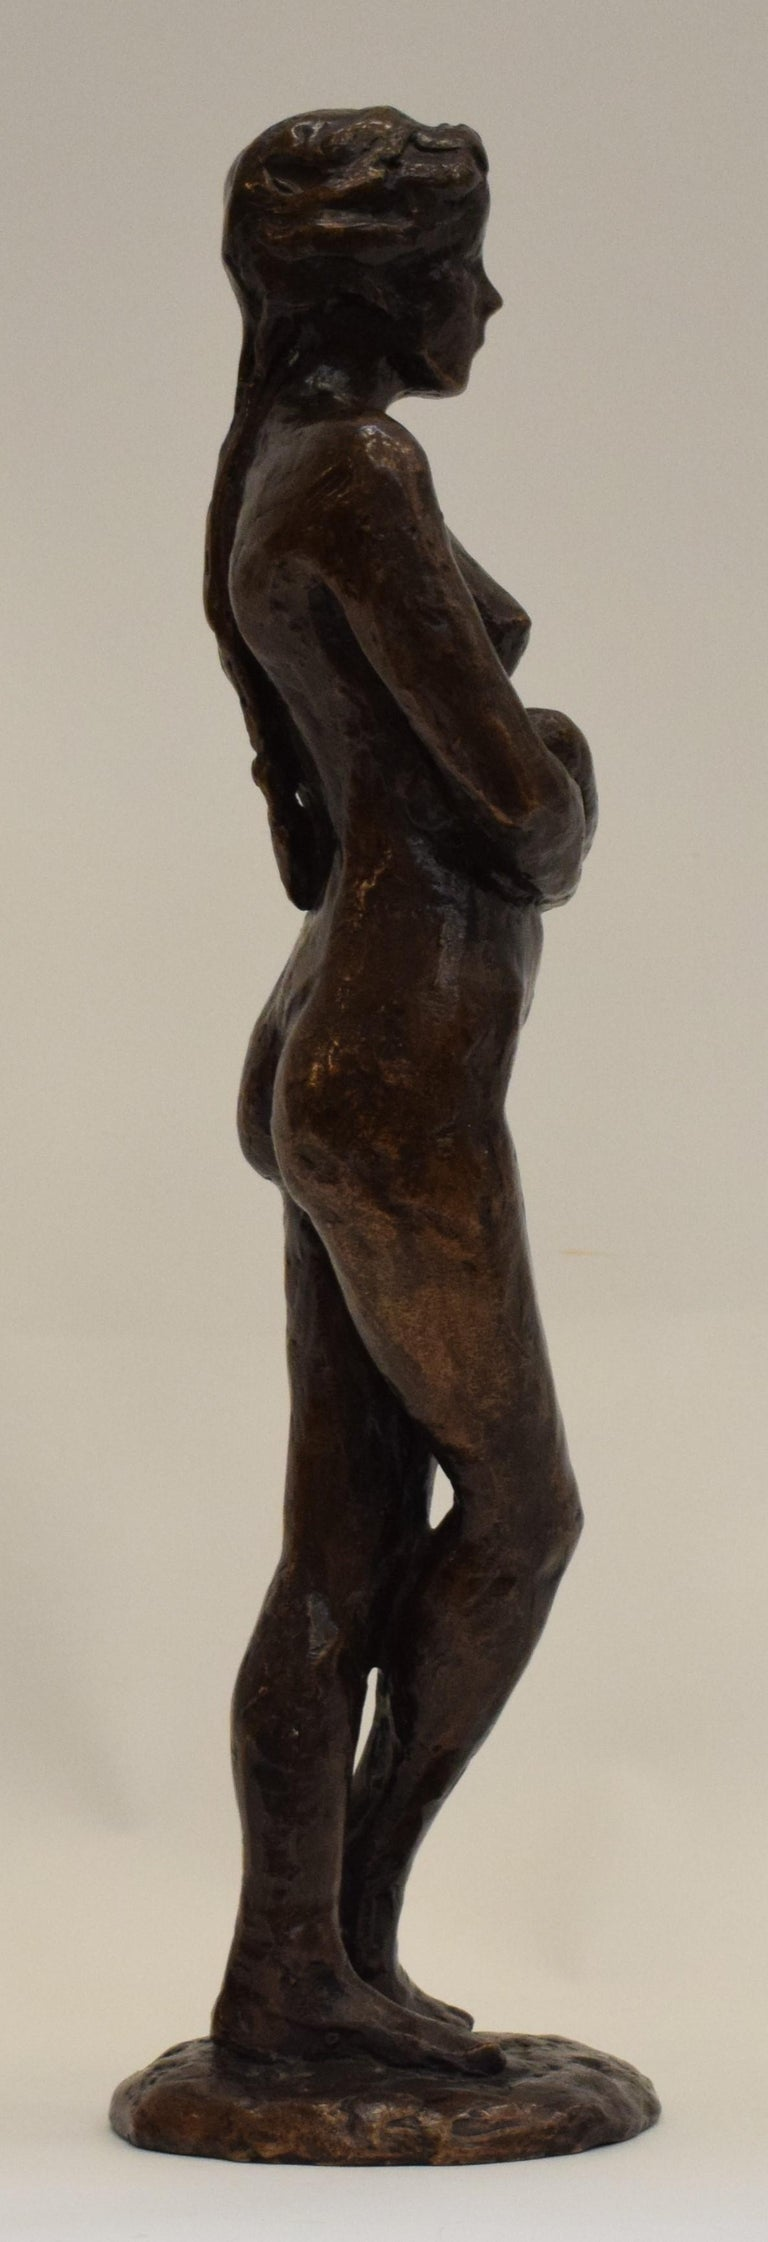 Anneke Hei-Degenhardt works and lives in Heemstede and is a respected artist, her work can also be found on the Hoflaan. Degenhardt was born in 1951 in Den hague in the Netherlands. The statue is signed. The work is a unica.